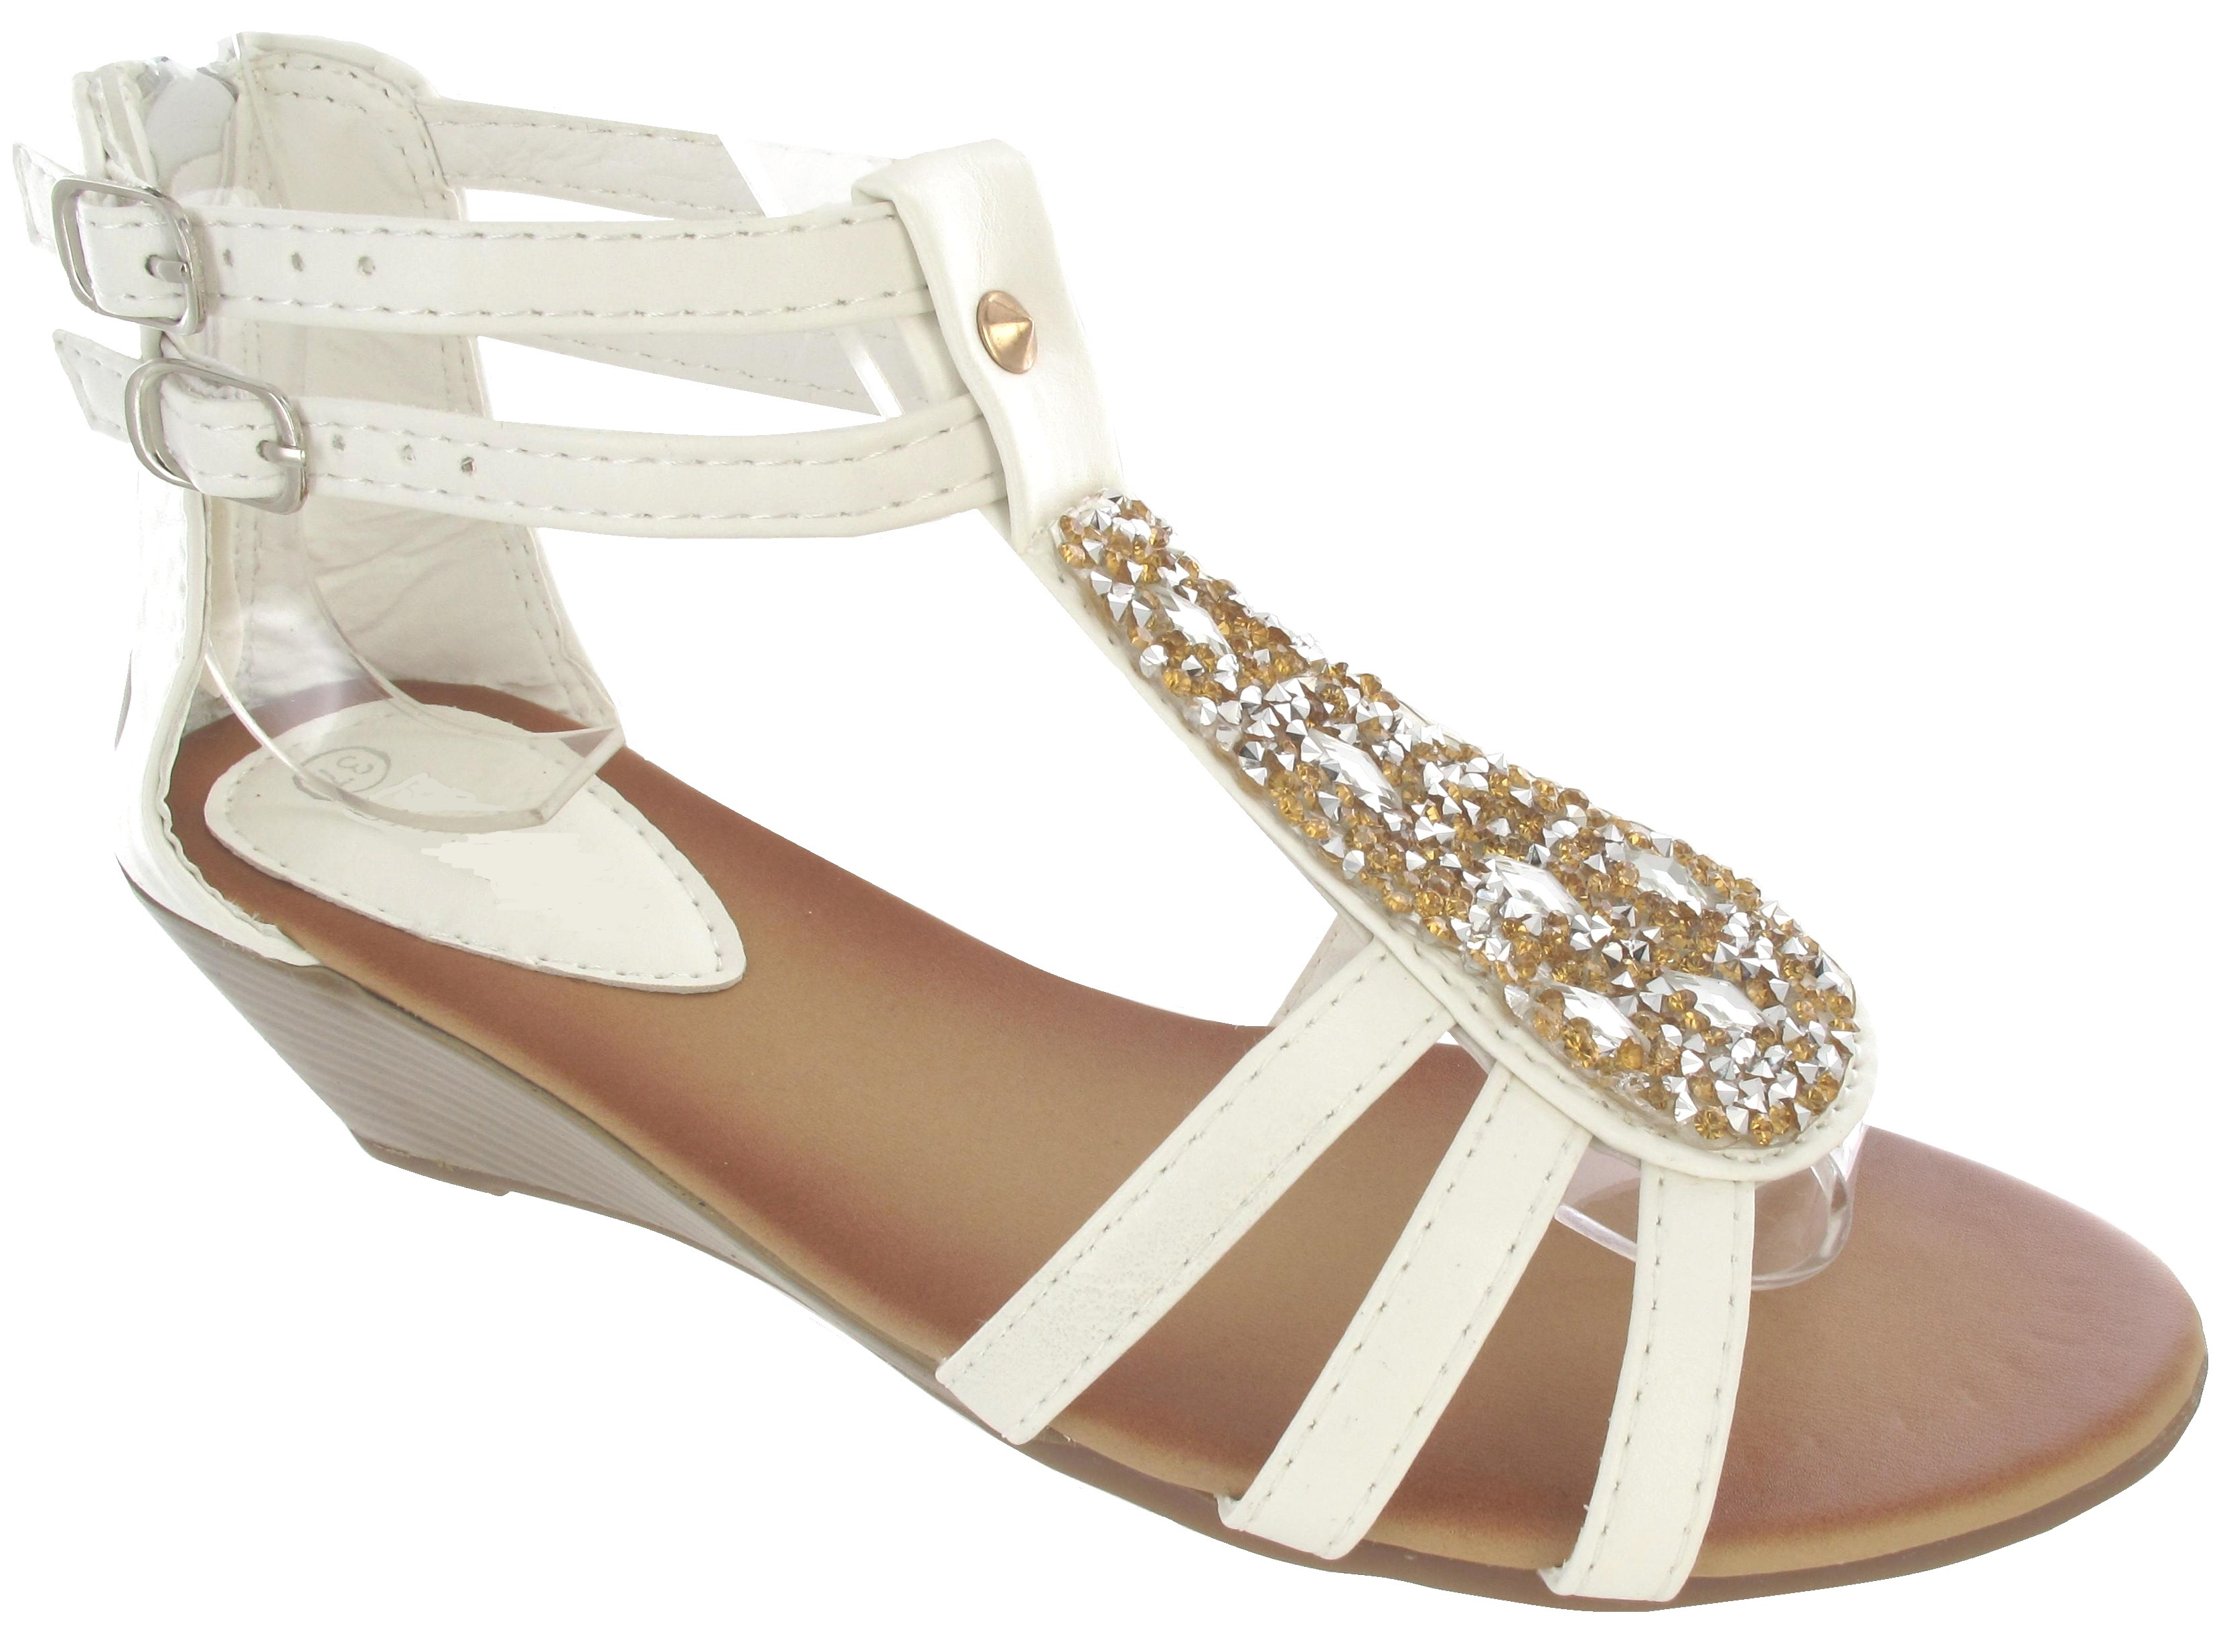 Simple Gabor Picasso  Women39s Modern Dressy Low Heel Sandals In Floral Print